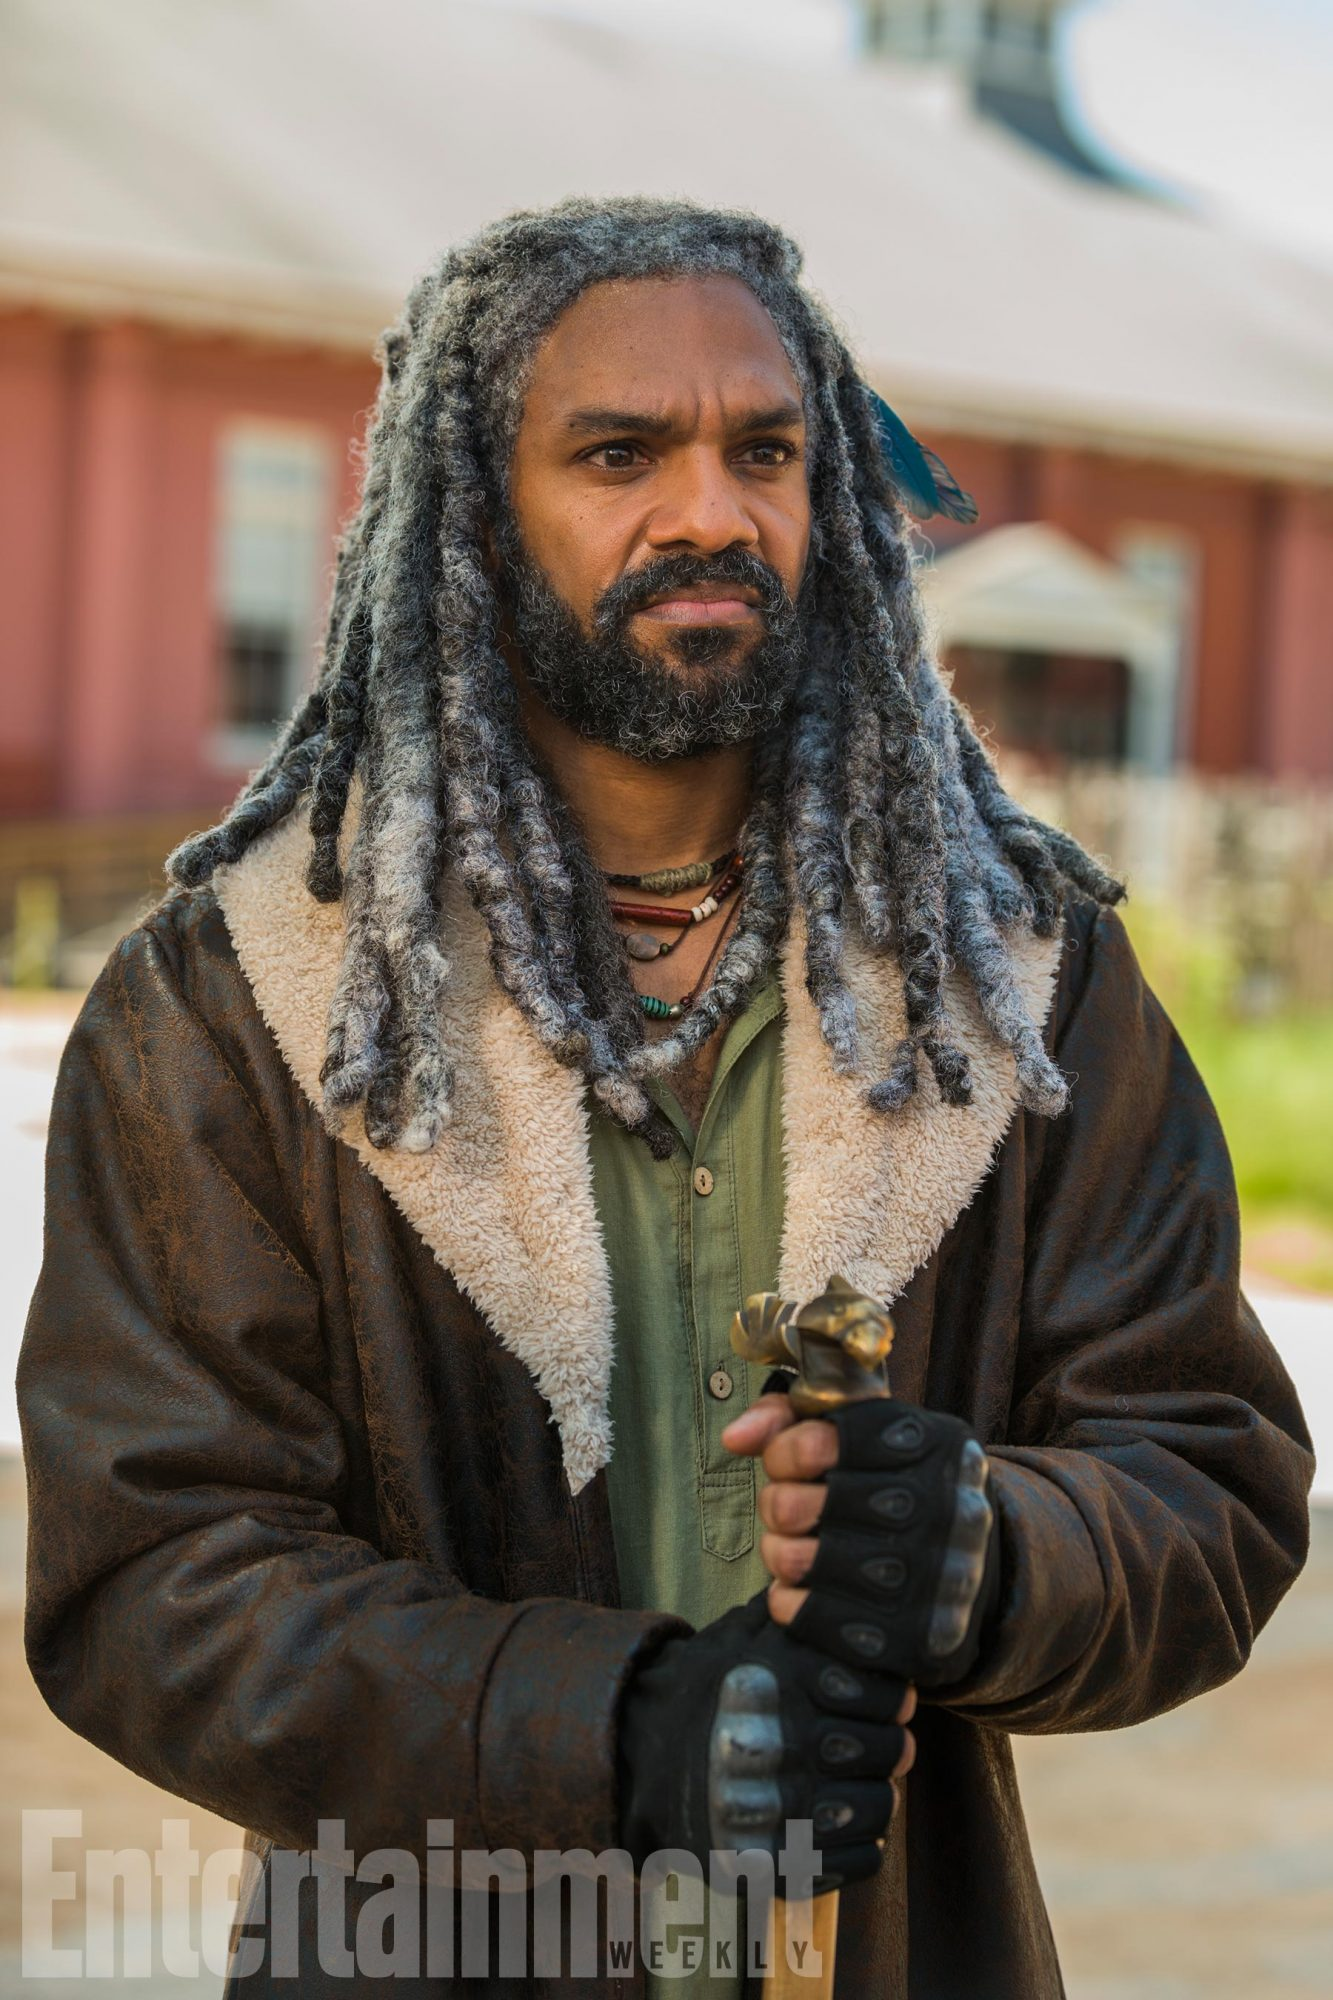 Walking Dead (2017)Season 7, Episode 9Khary Payton as Ezekiel